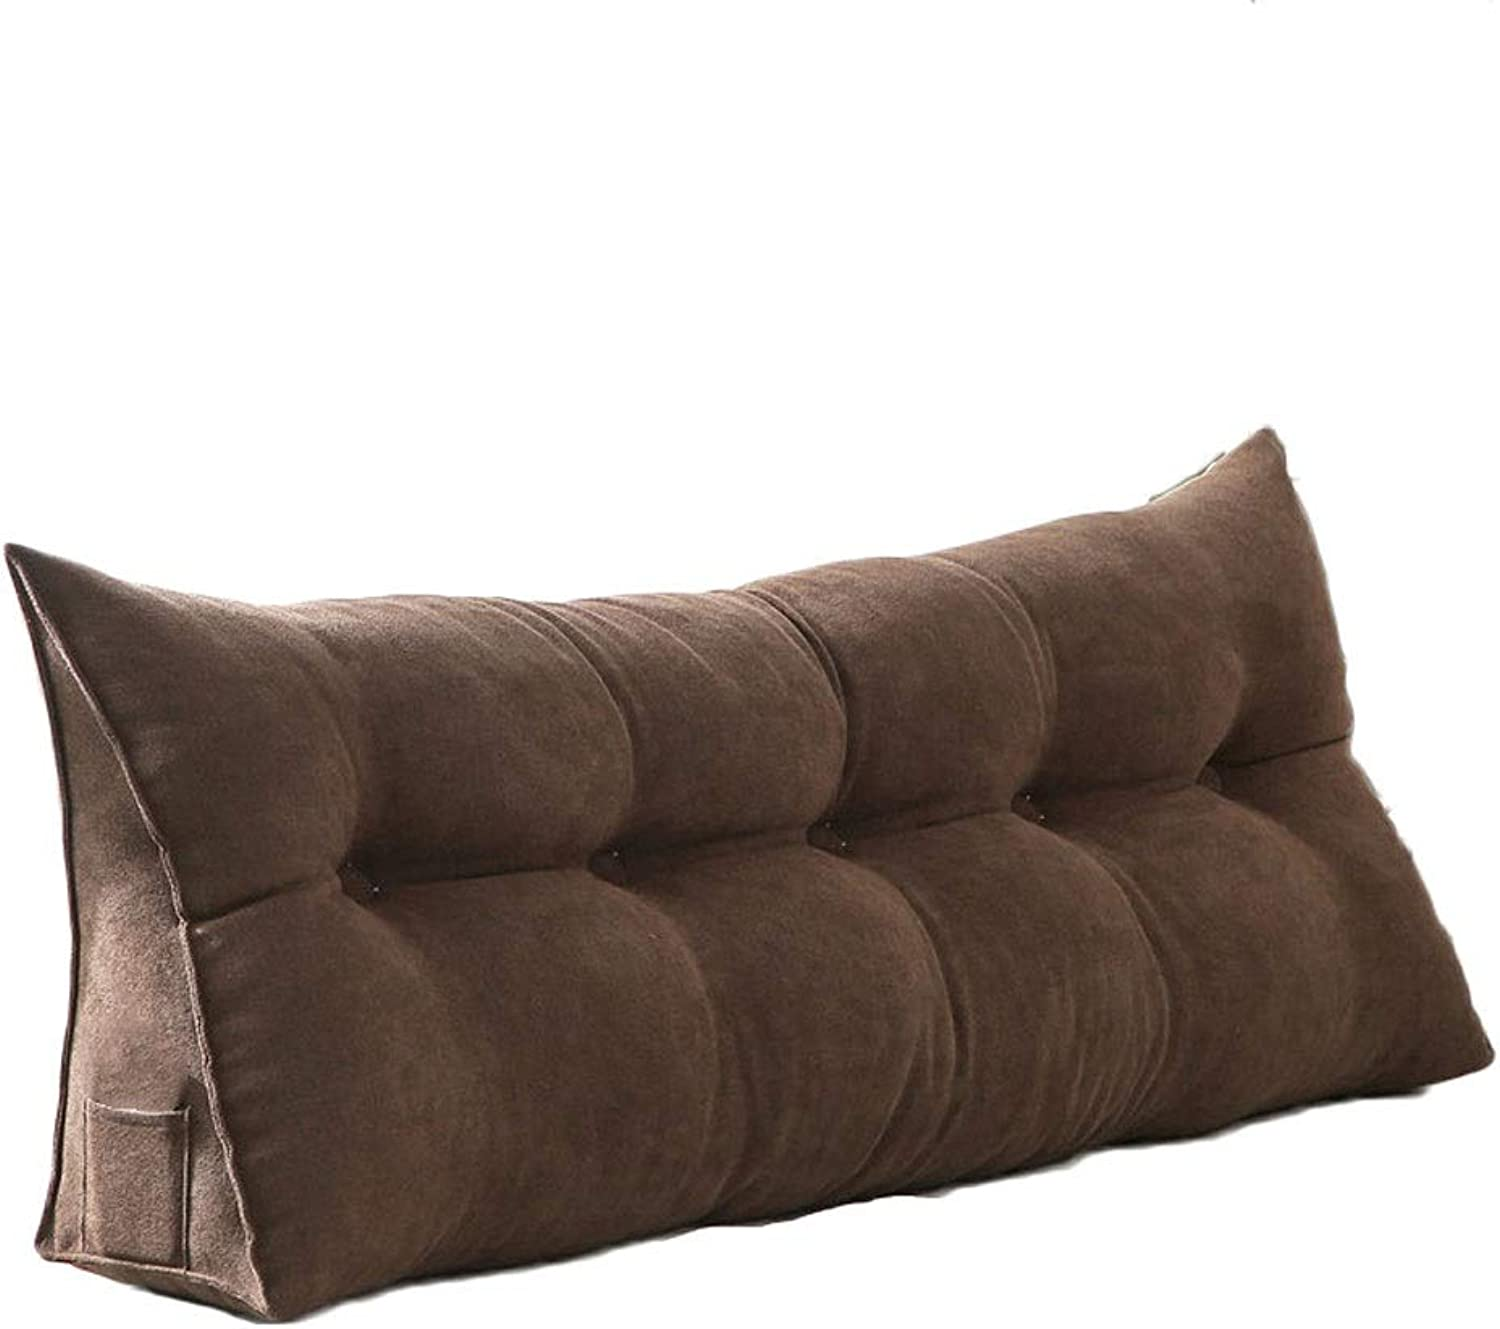 Nordic Simple Solid color Cushion Bed Triangle Back Long Pillow Sofa Large Cushion Zipper Removable and Washable (color   Brown, Size   120  20  50cm)